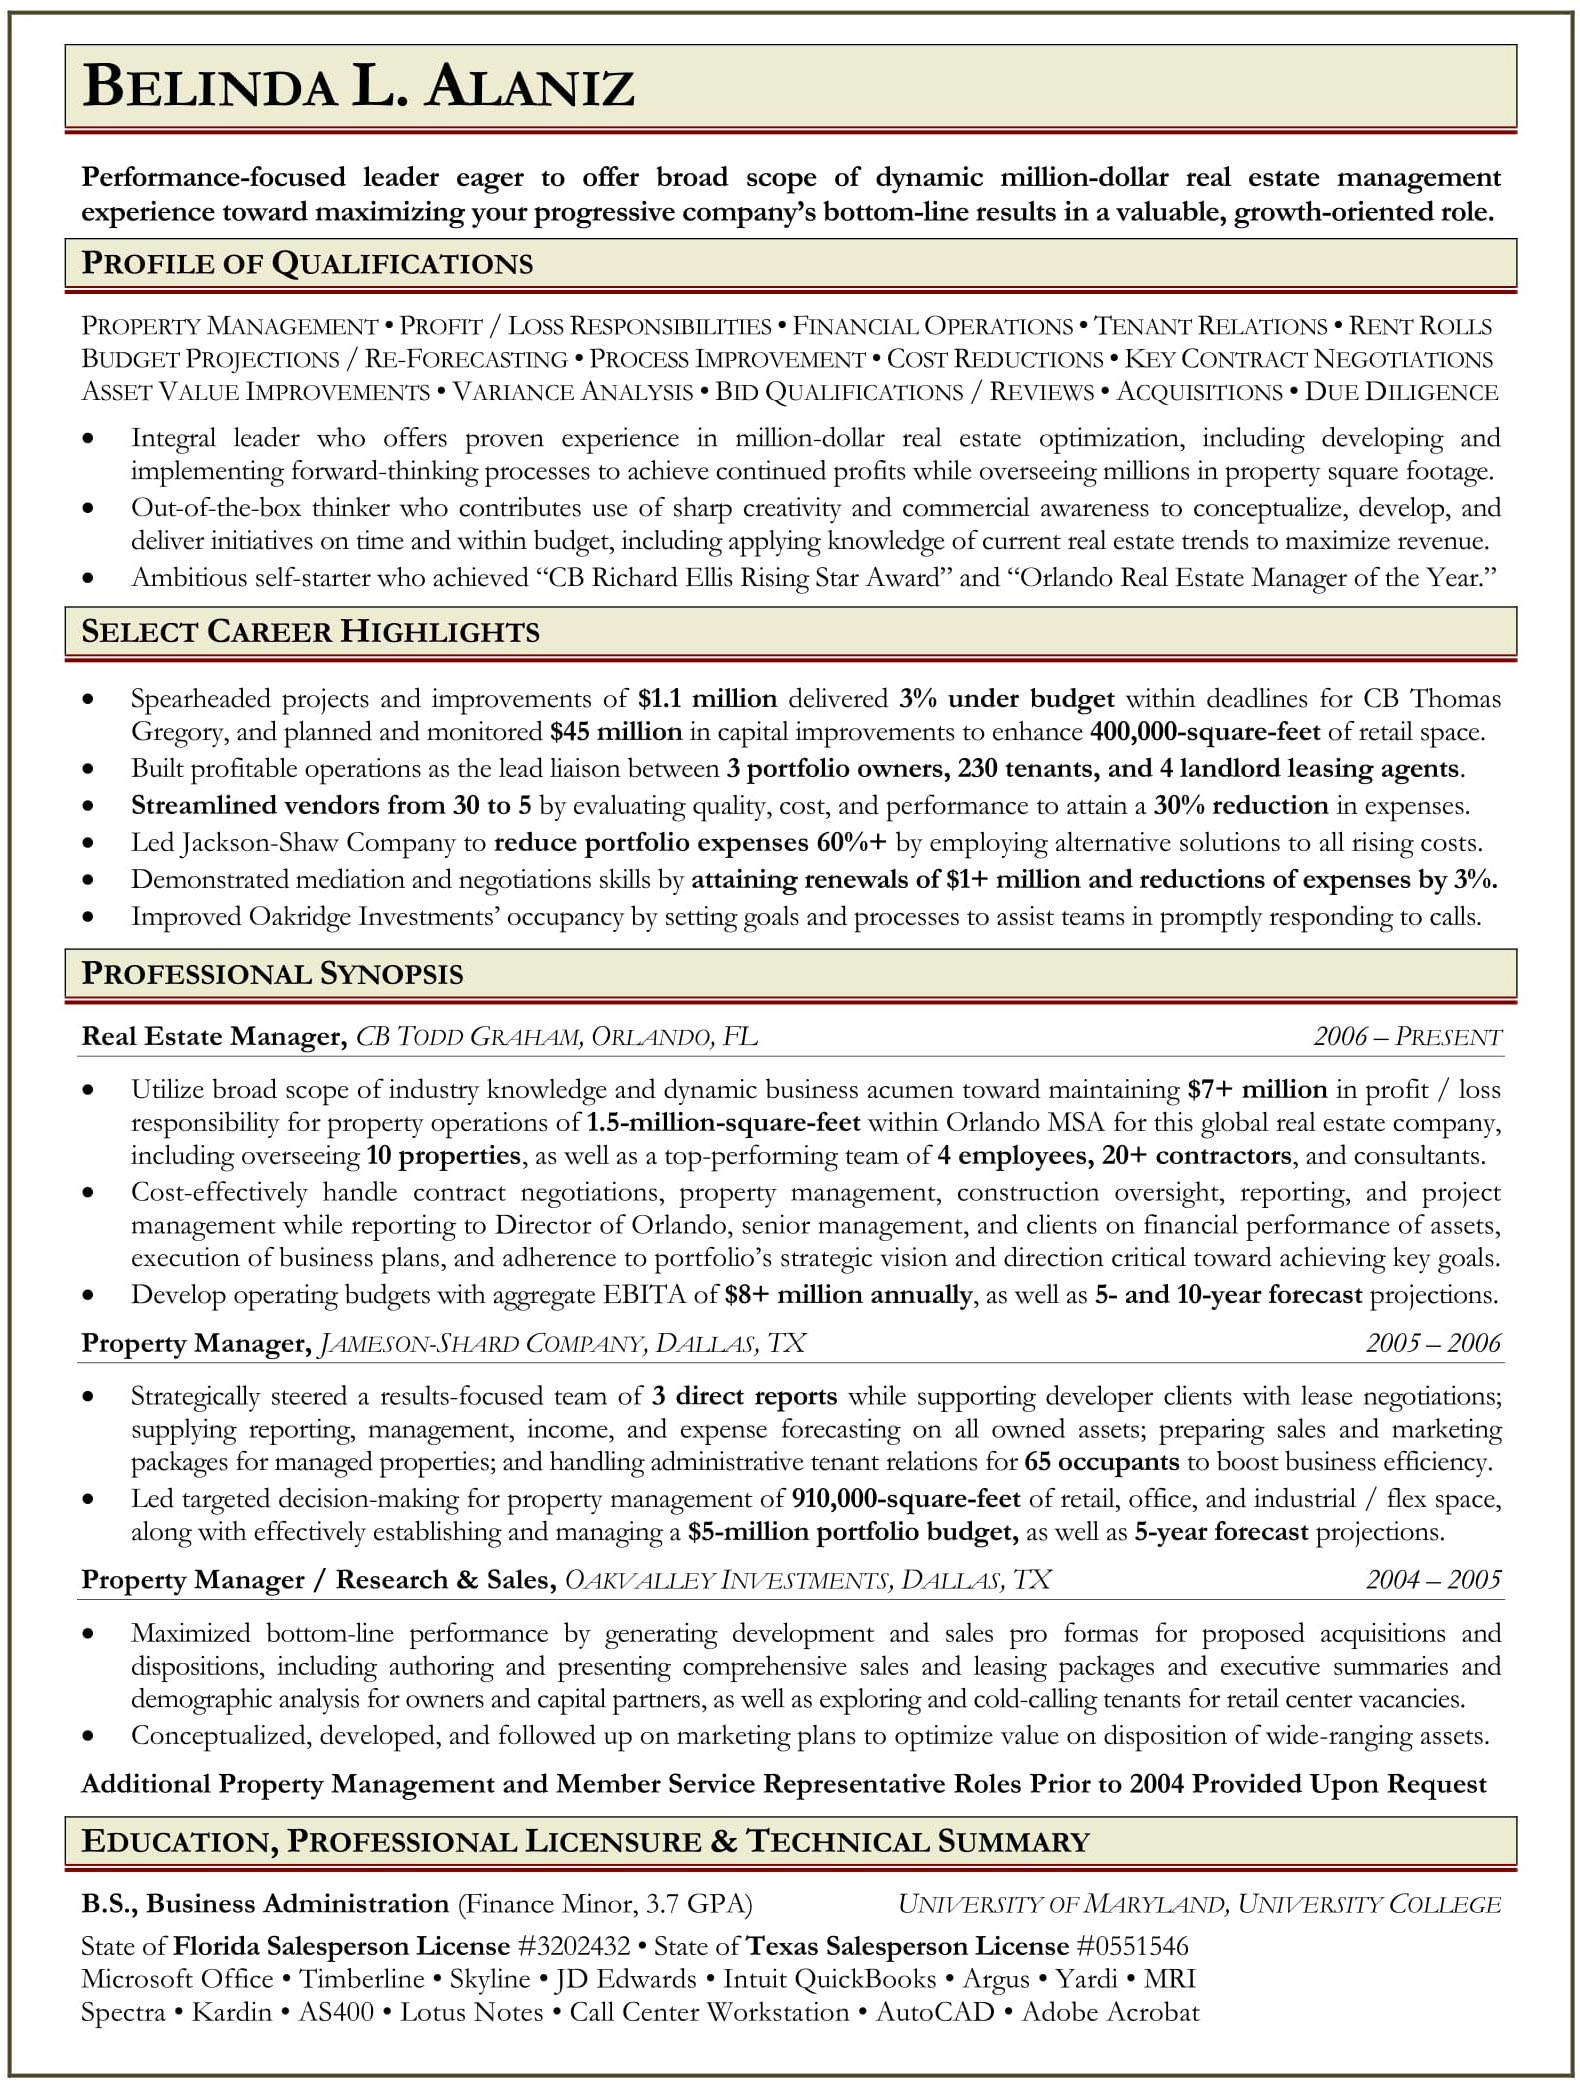 Sample Resume for Property Manager Ranked # 1